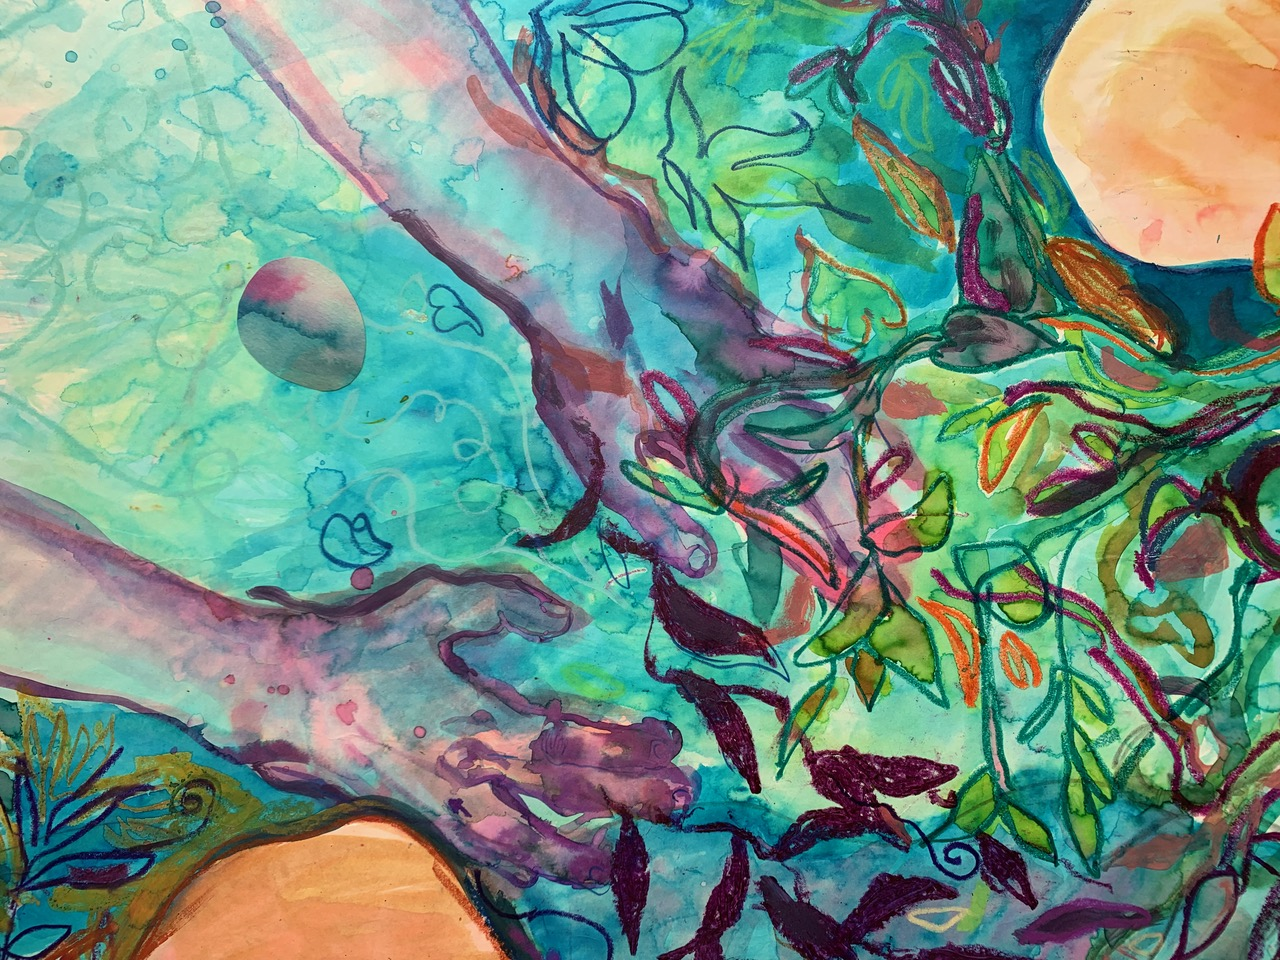 """Detail from Lucy Plowe's """"Primeval Waters"""". Watercolor and mixed media on paper, mounted on canvas, 52x40"""". 2019. Click to enlarge. View on her website  here ."""